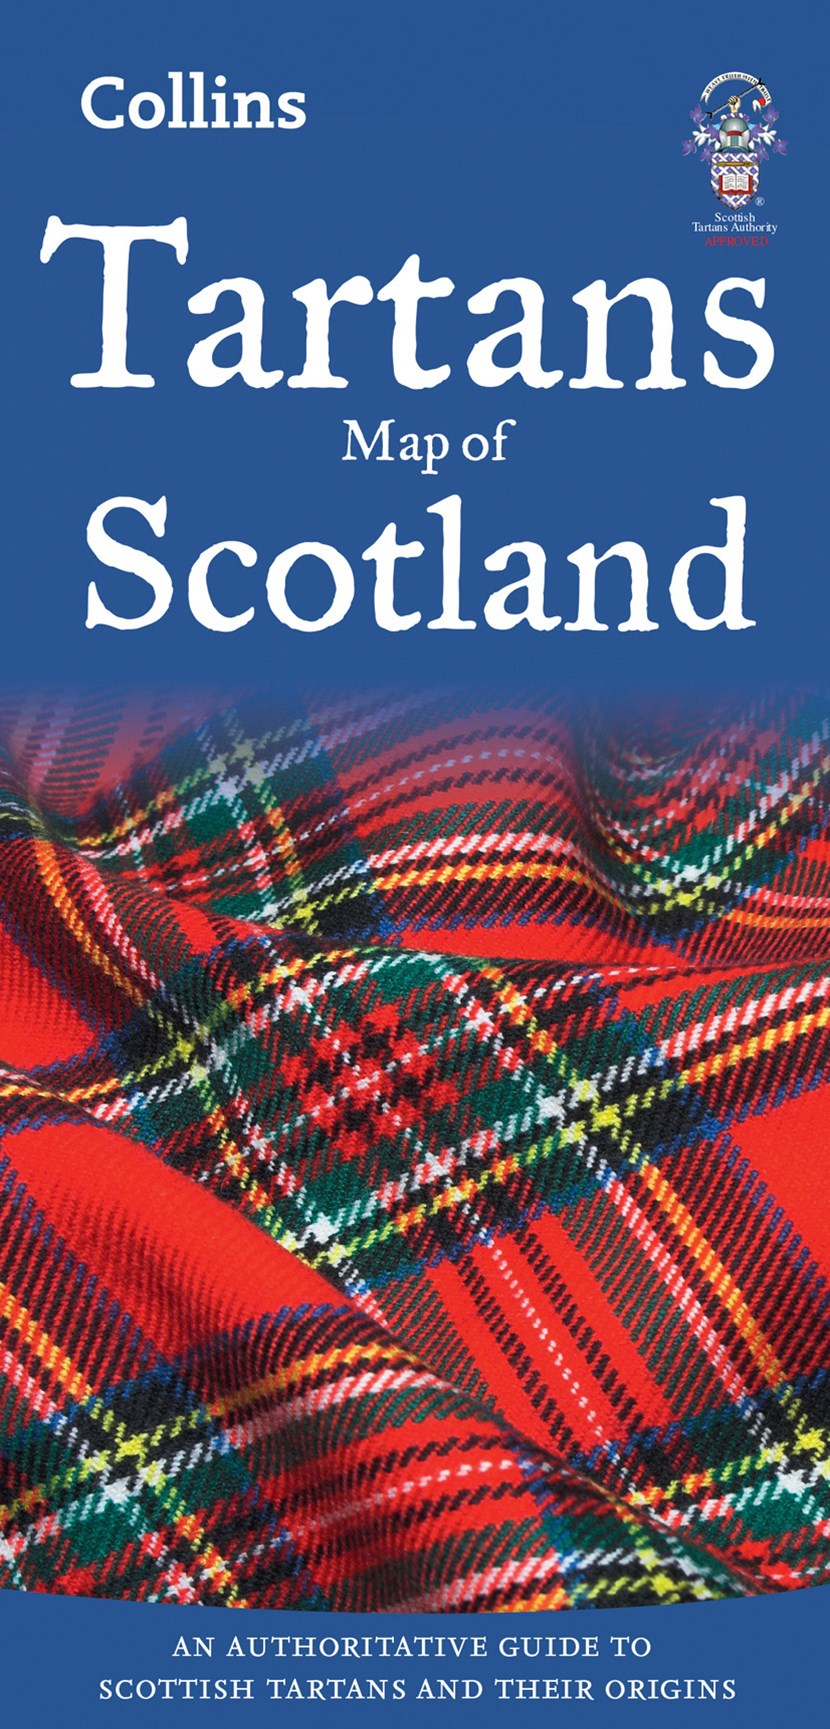 Collins Pictorial Maps - Tartans Map Of Scotland [New Edition]